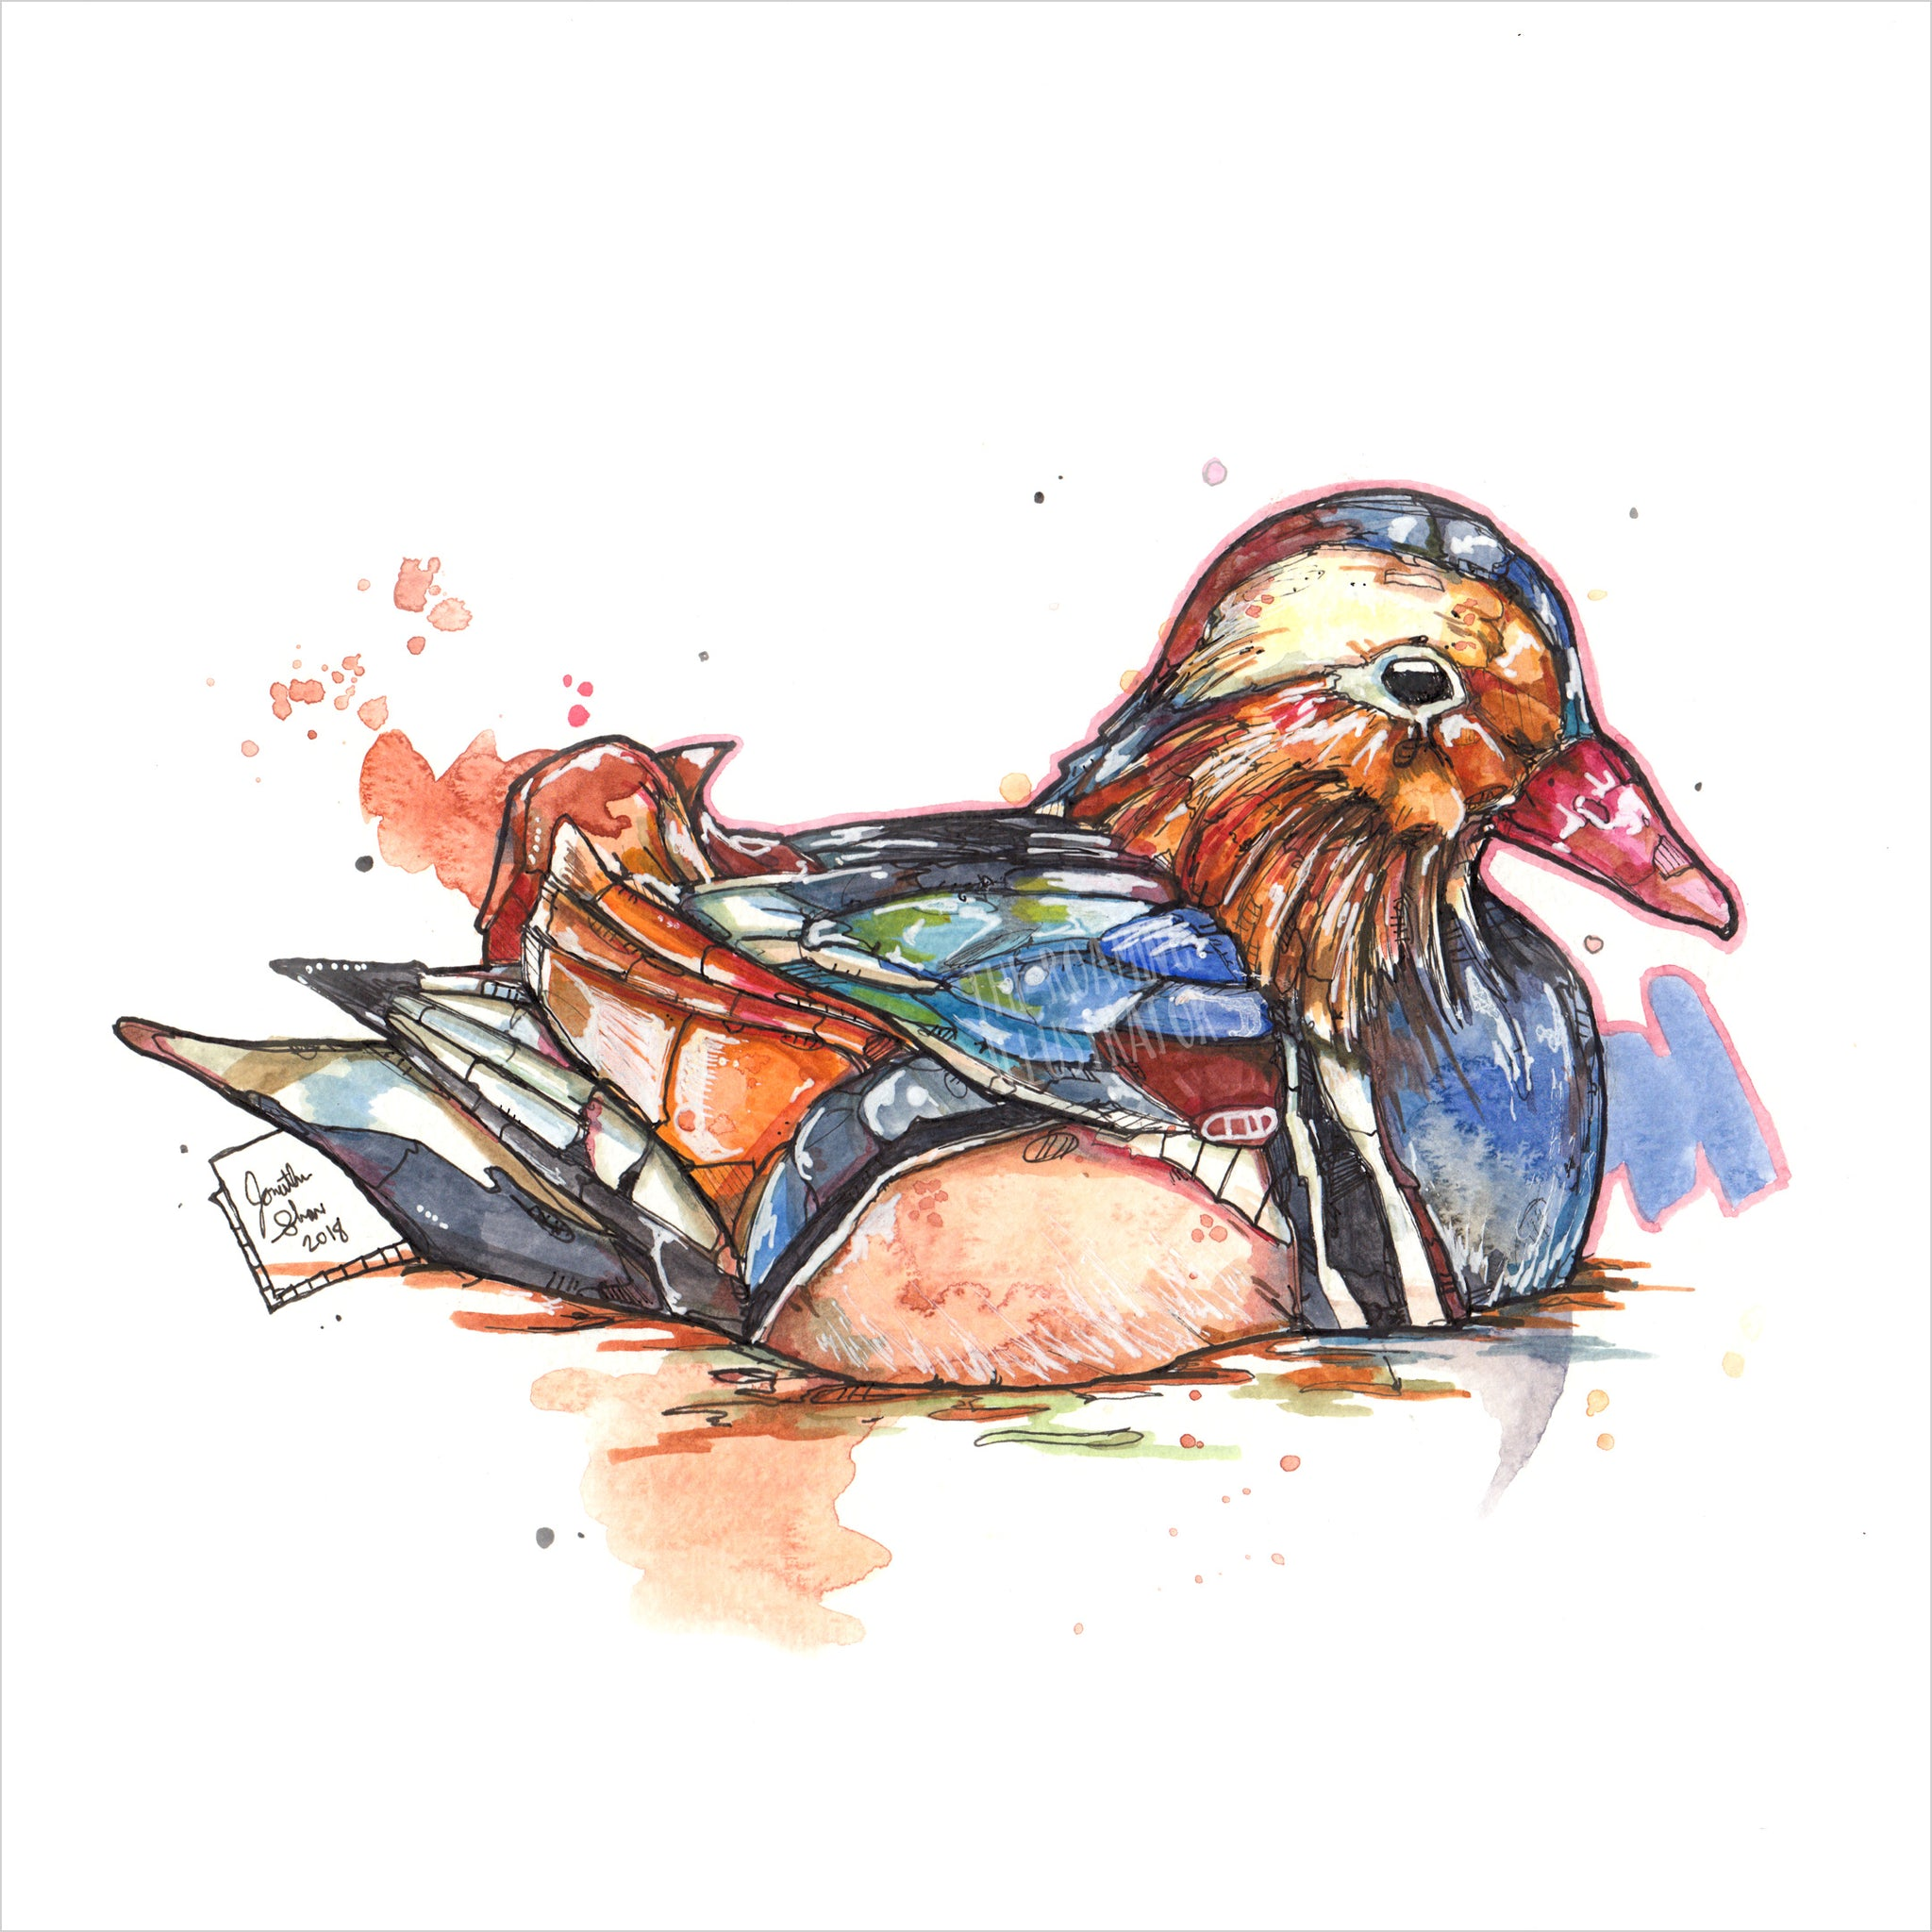 """Mandarin Duck"" - 8x10 Reproduction print"